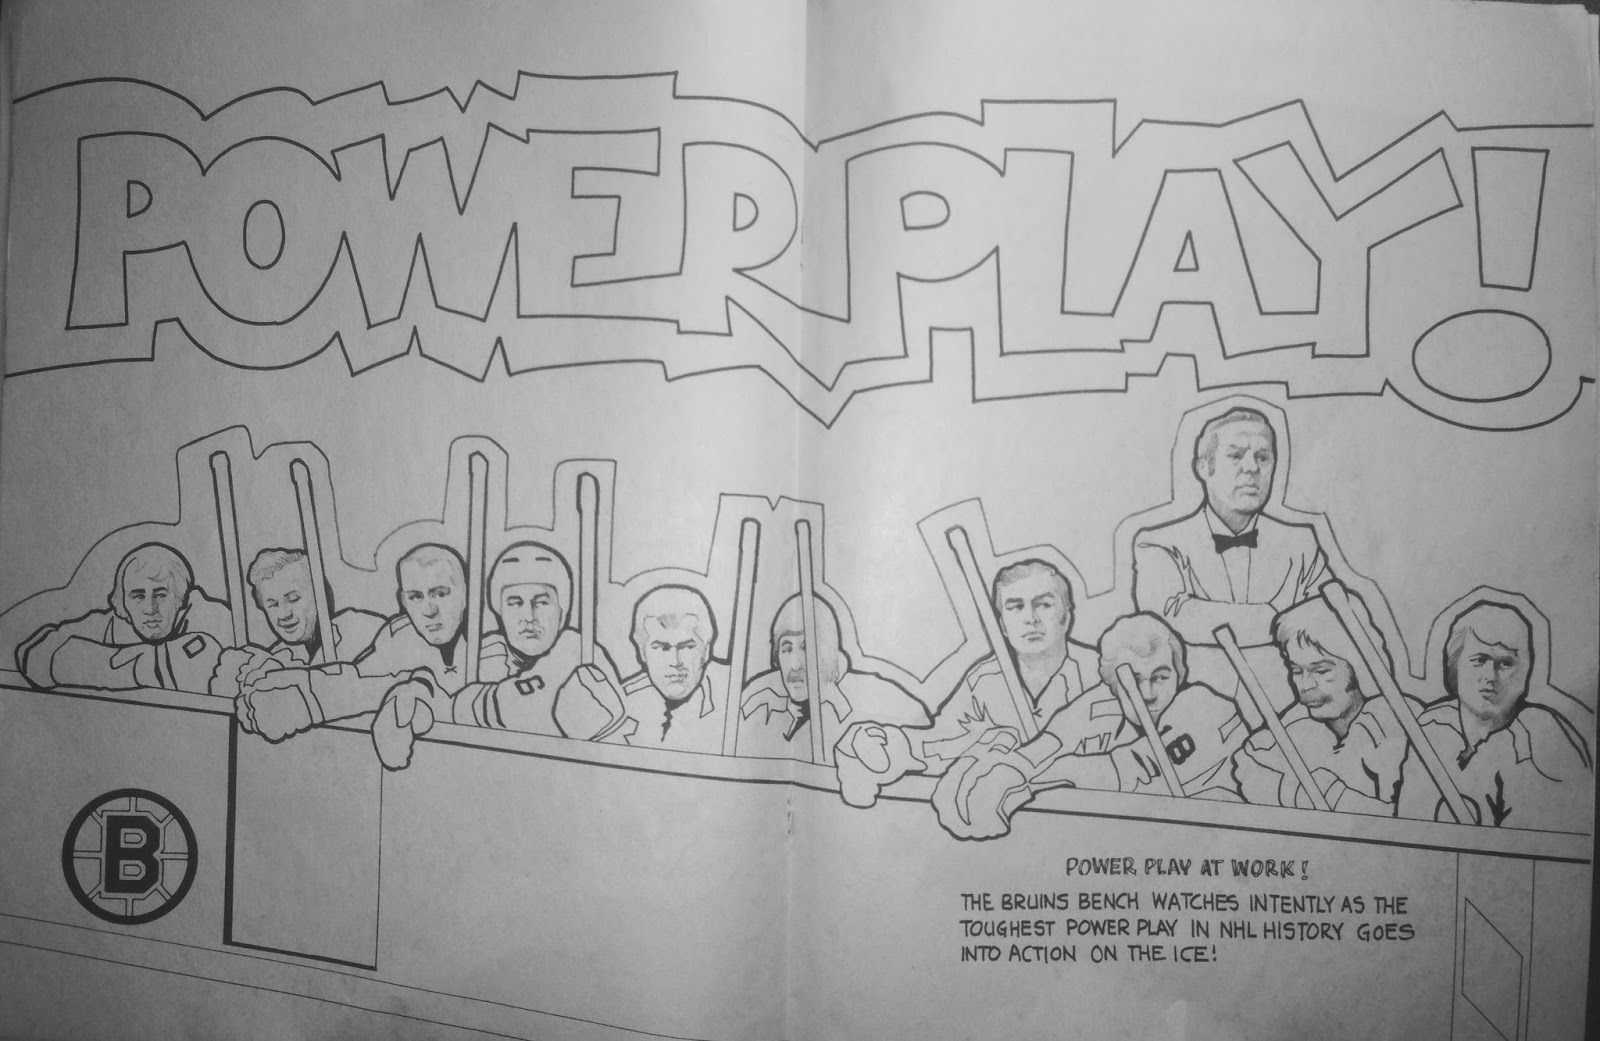 boston bruins coloring pictures boston bruins 1972 coloring book bruins coloring pictures boston